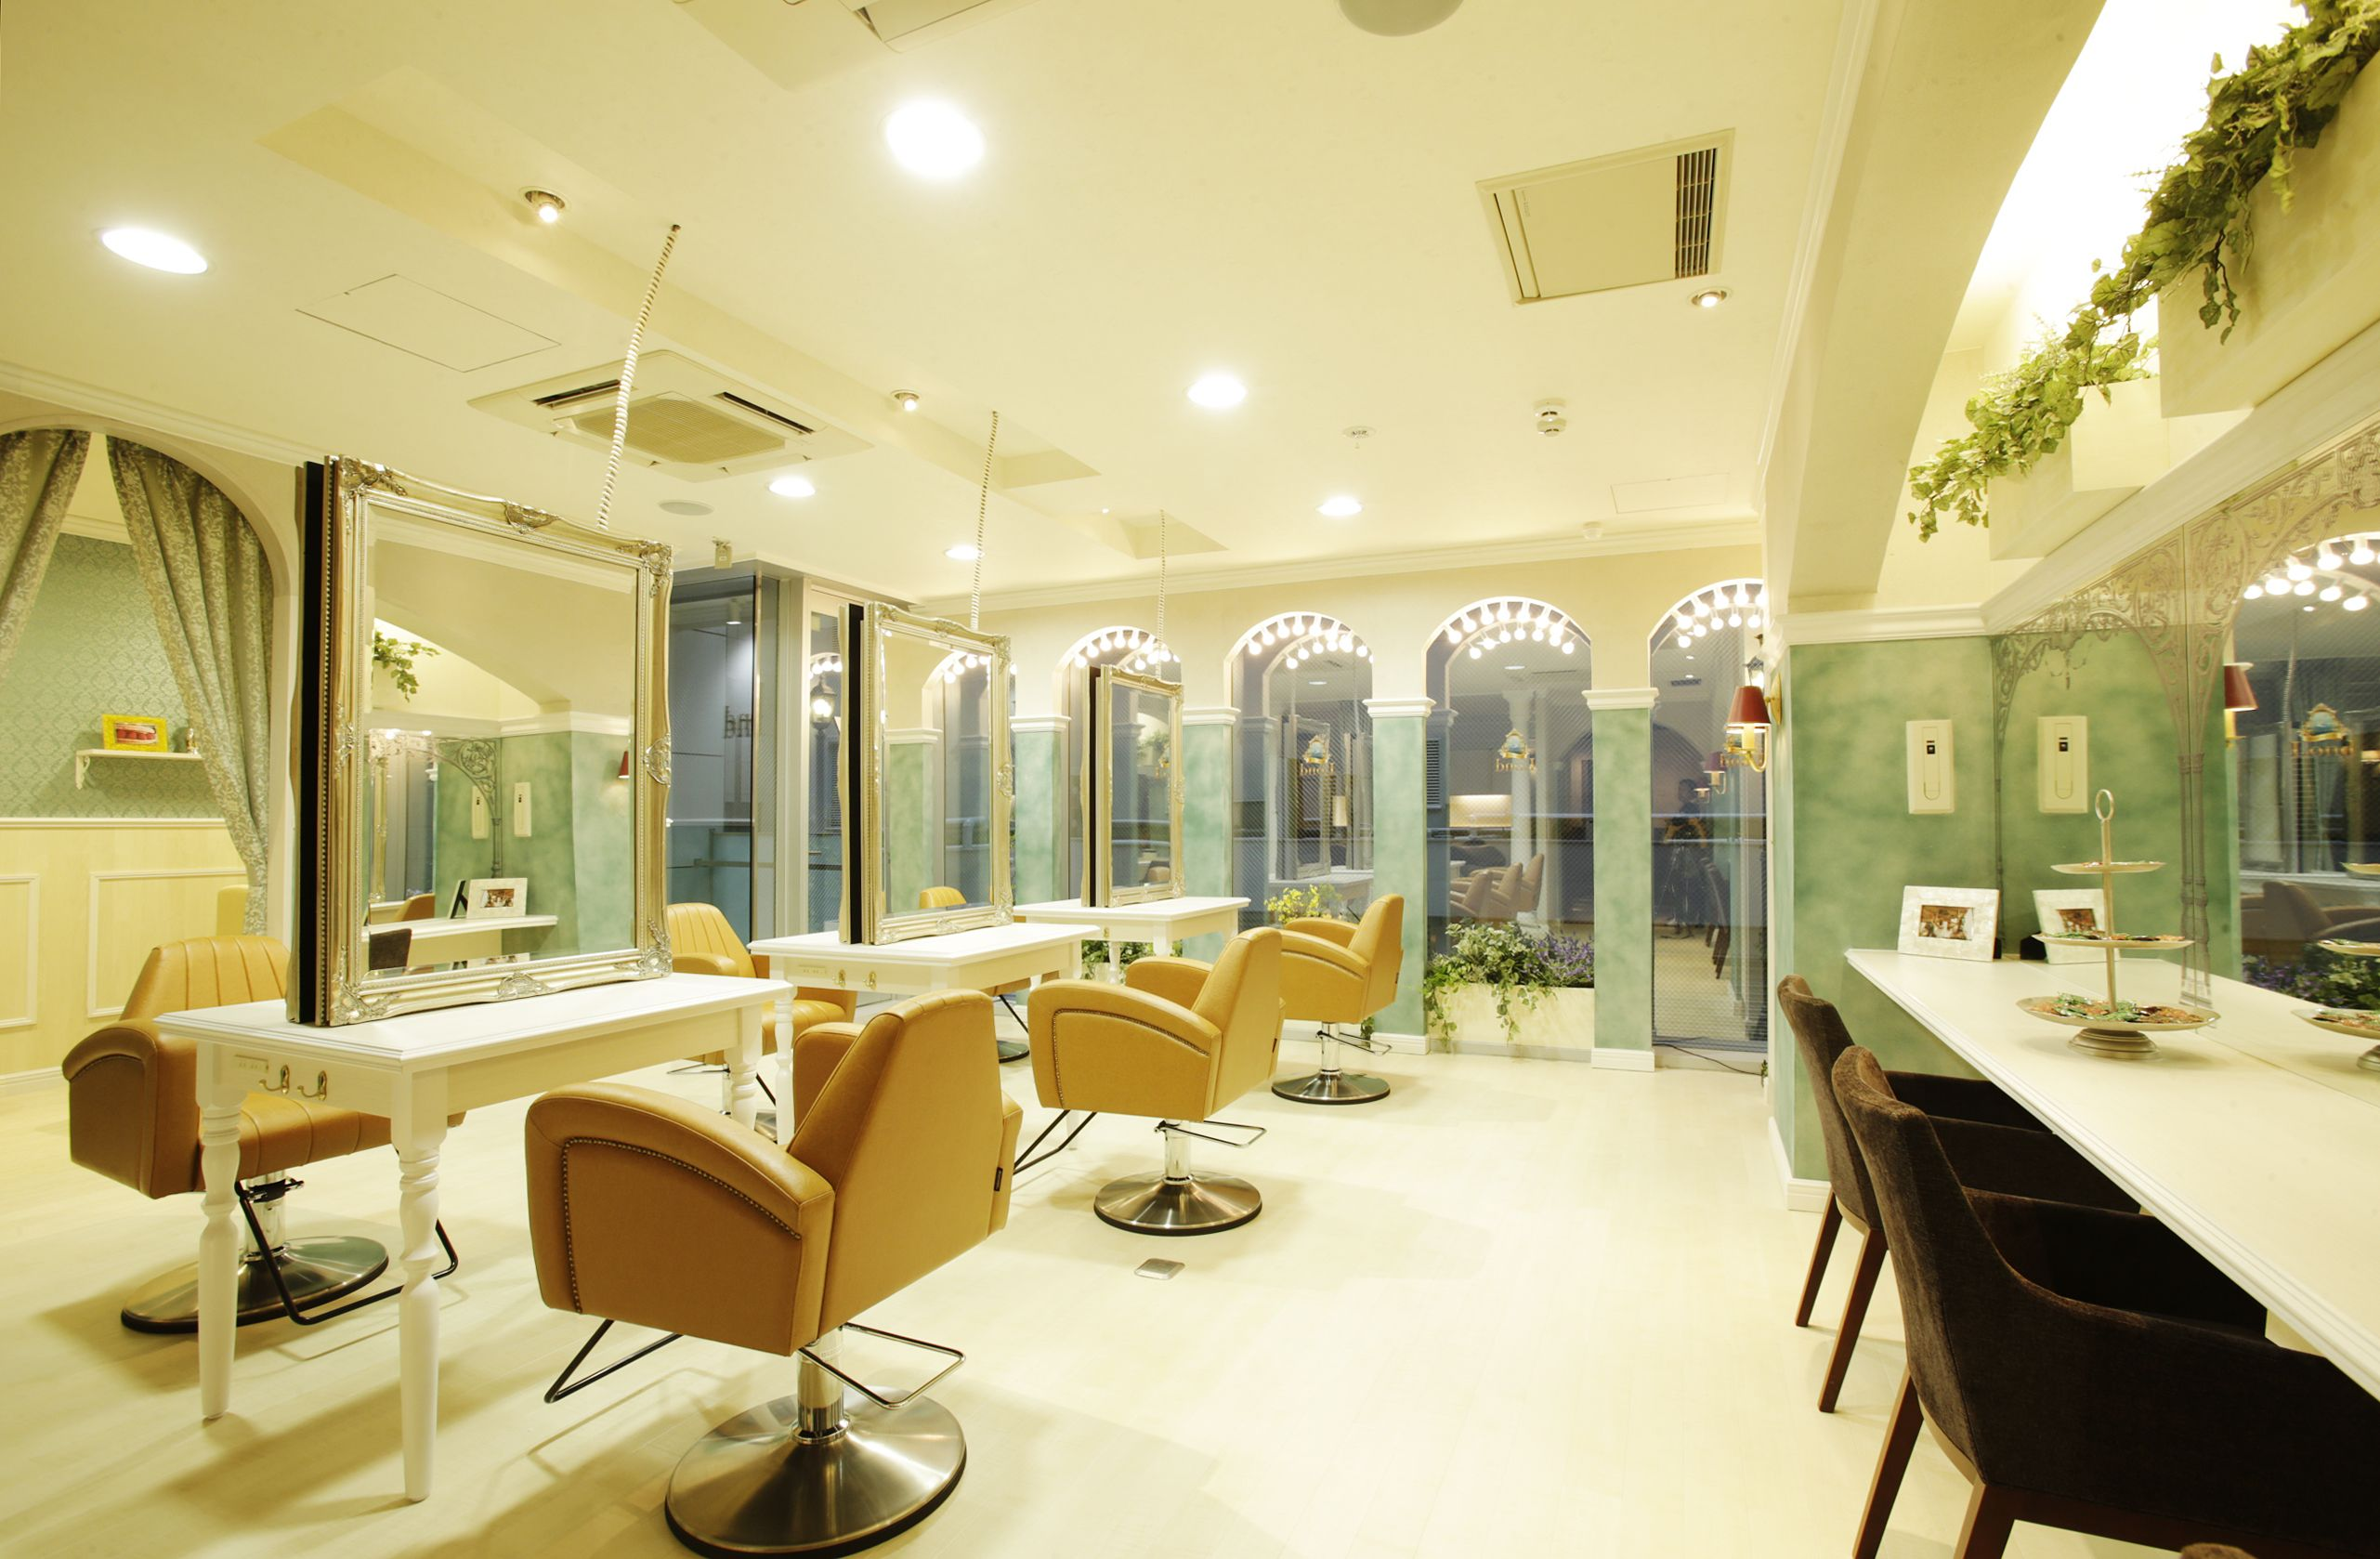 Beauty salon interior design ideas | + hair + space + decor + Japan ...